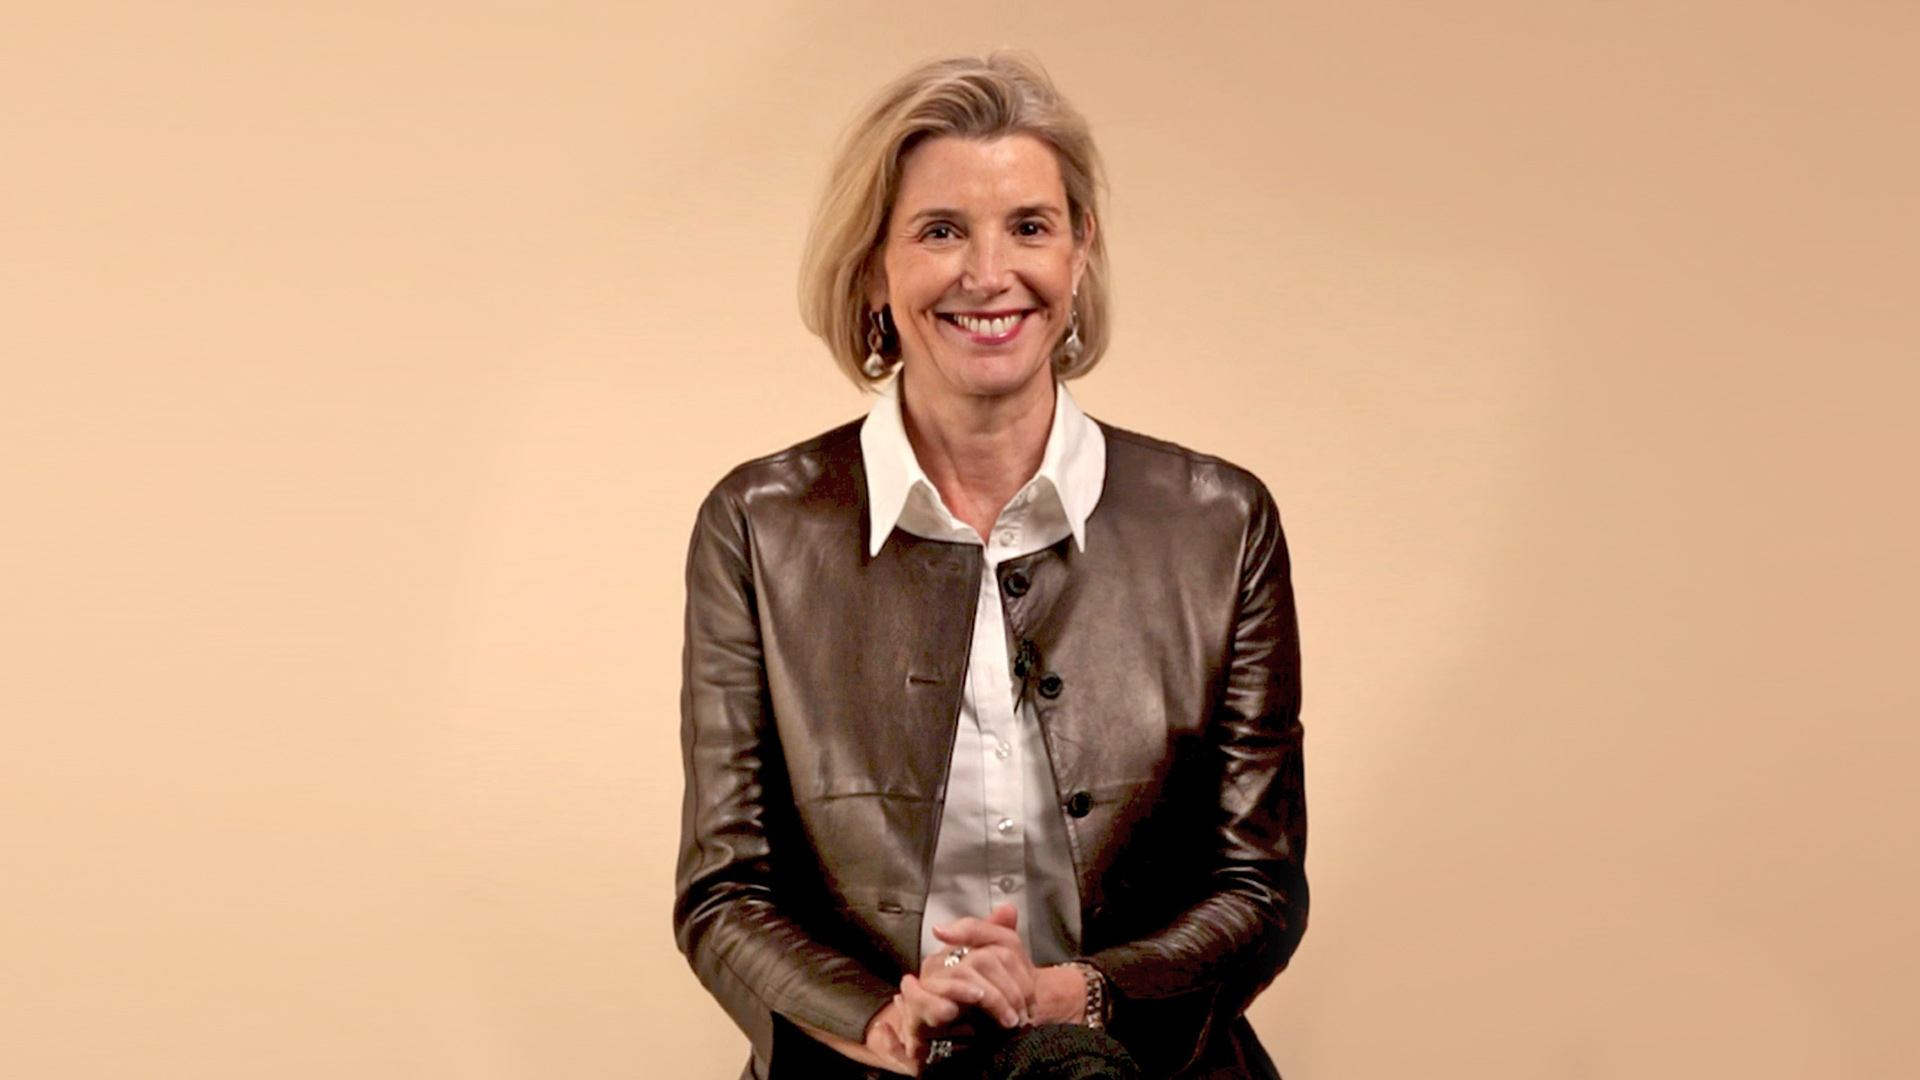 A freeze frame of Sallie Krawcheck in a leather jacket, smiling into the camera. Photo.